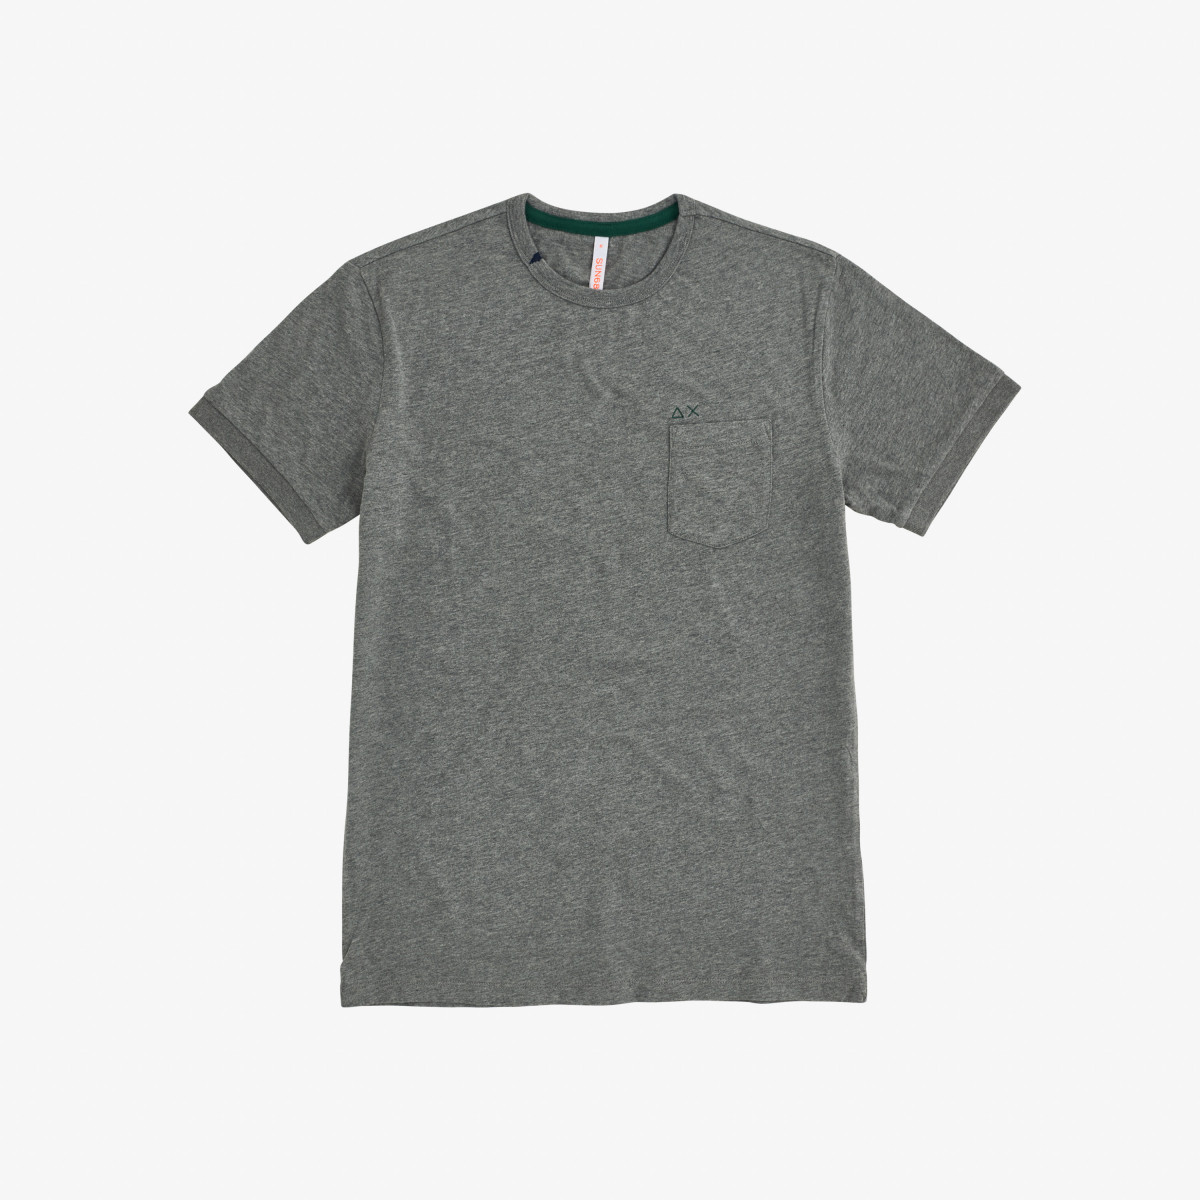 BOY'S T-SHIRT POCKET SOLID S/S GRIGIO MEDIO